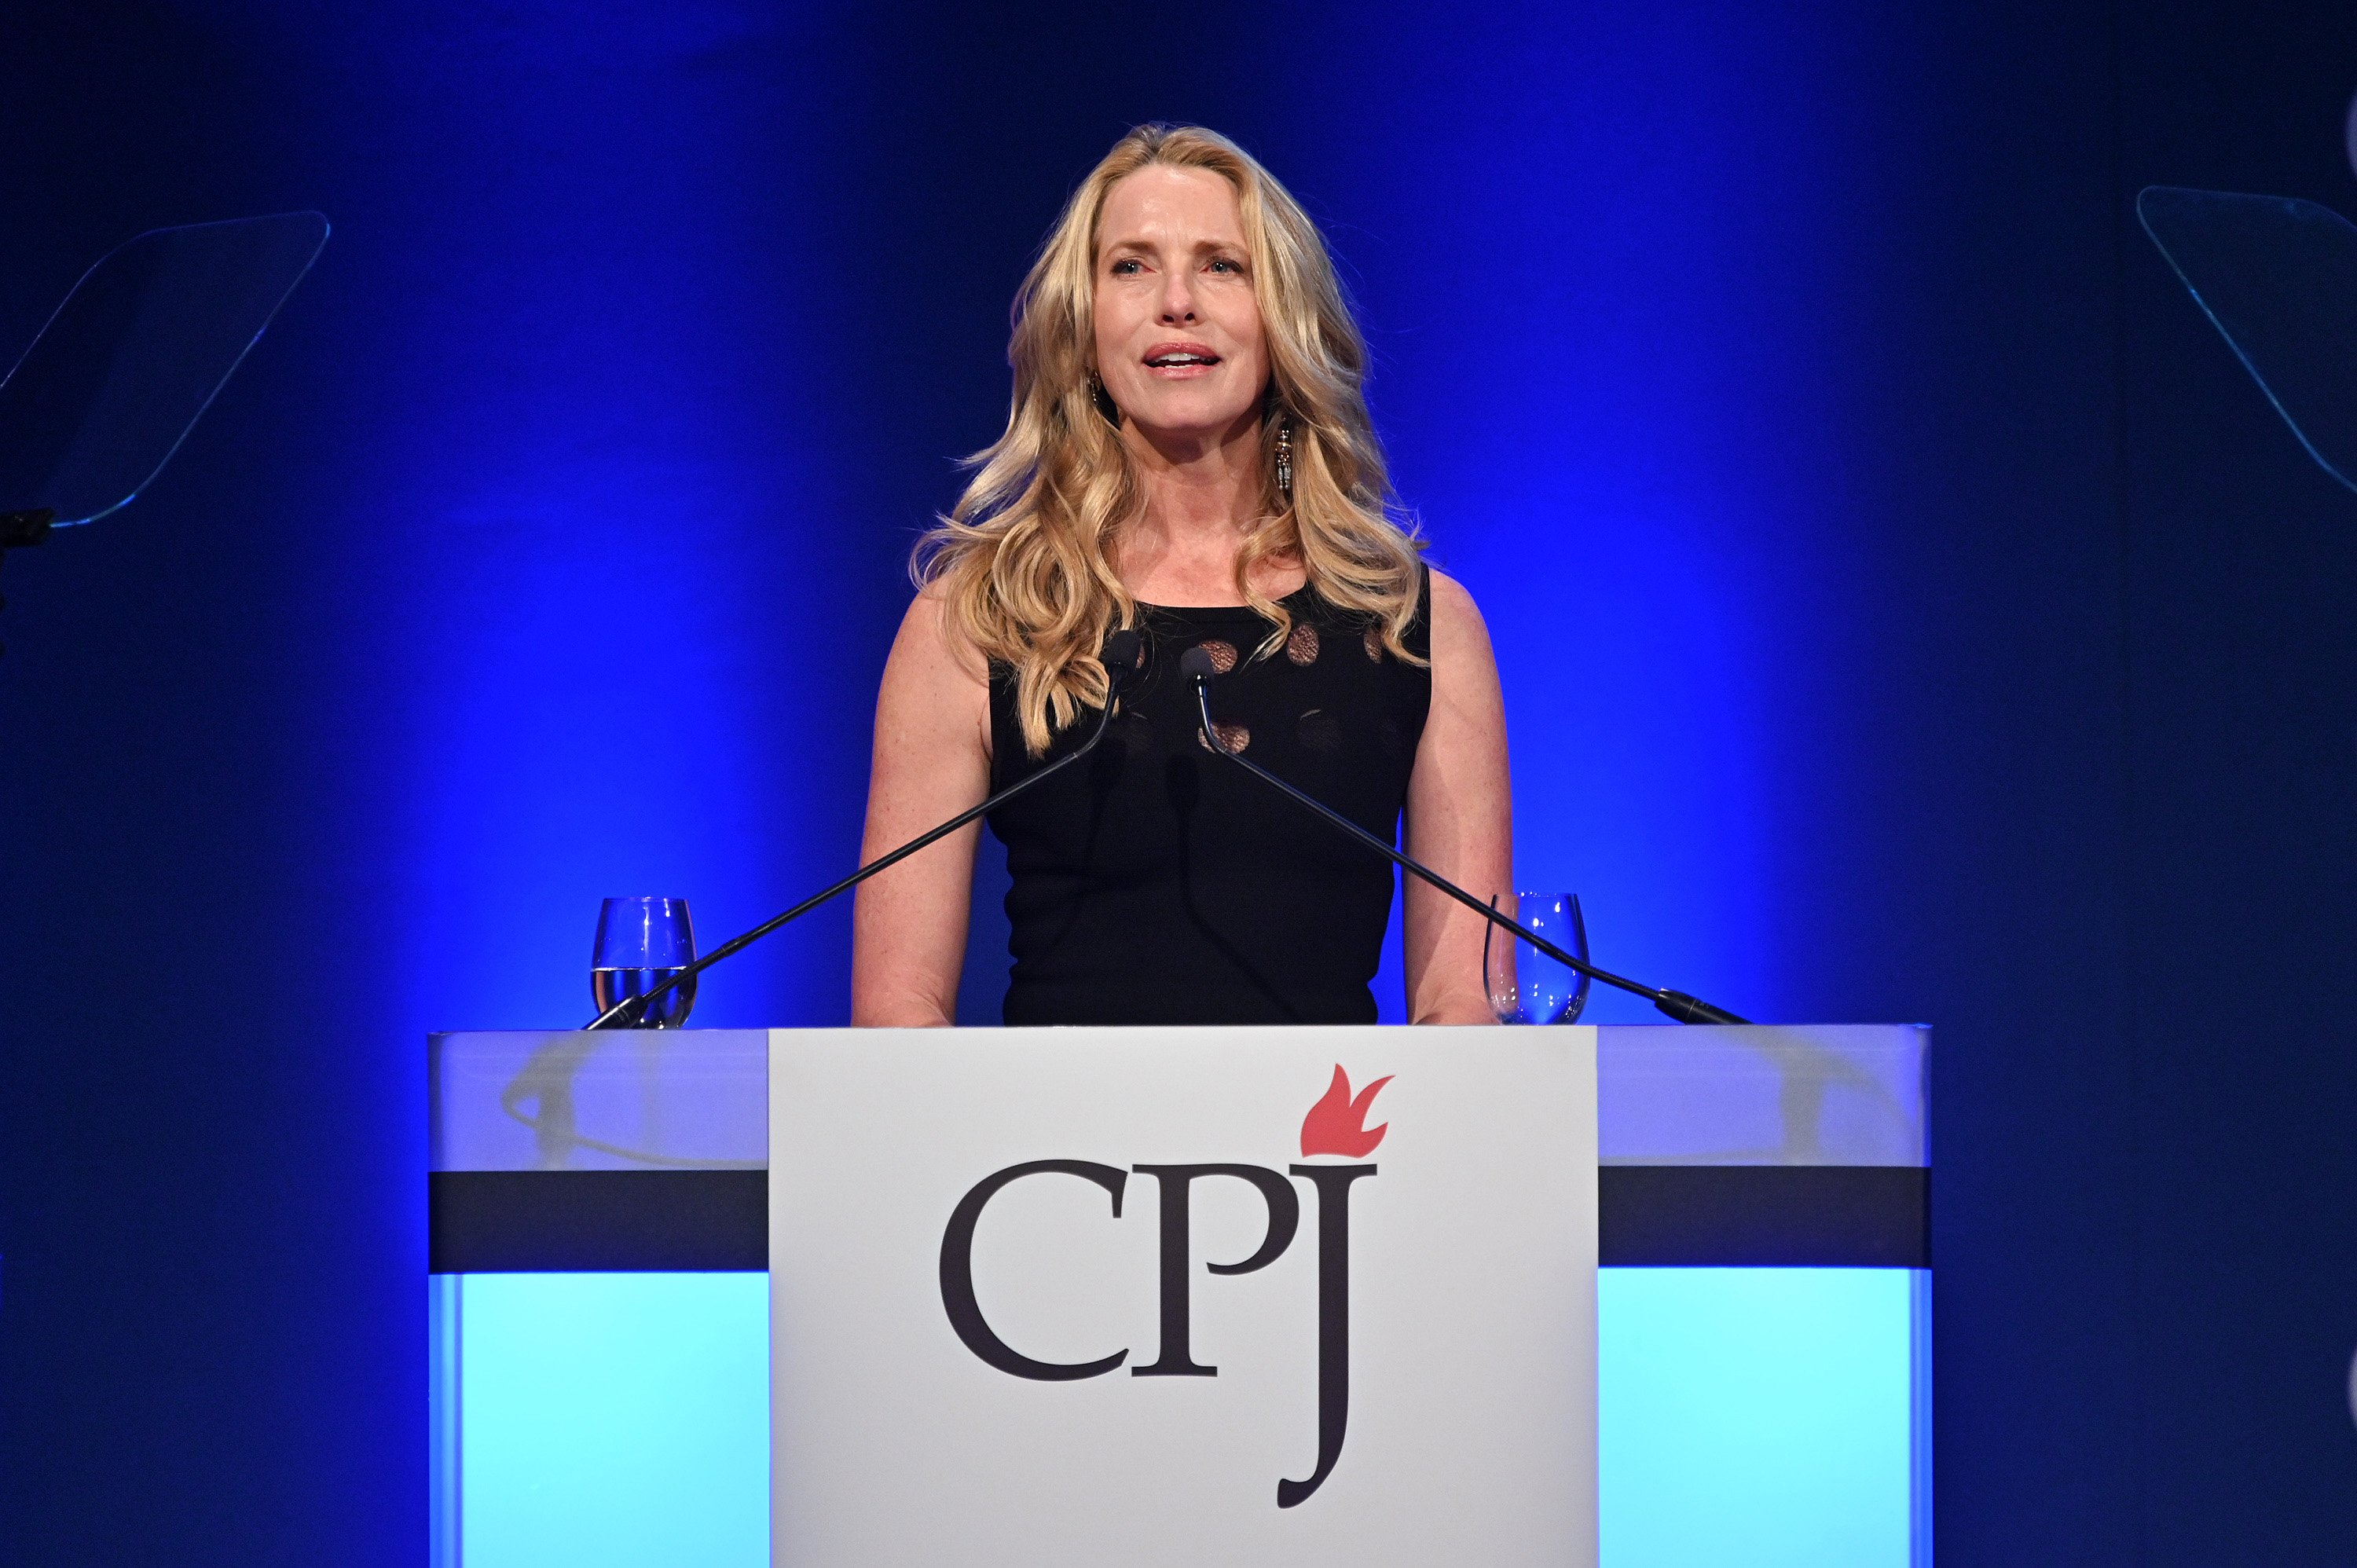 Laurene Powell Jobs at the Committee to Protect Journalists' 29th Annual International Press Freedom Awards on November 21, 2019 | Photo: Getty Images